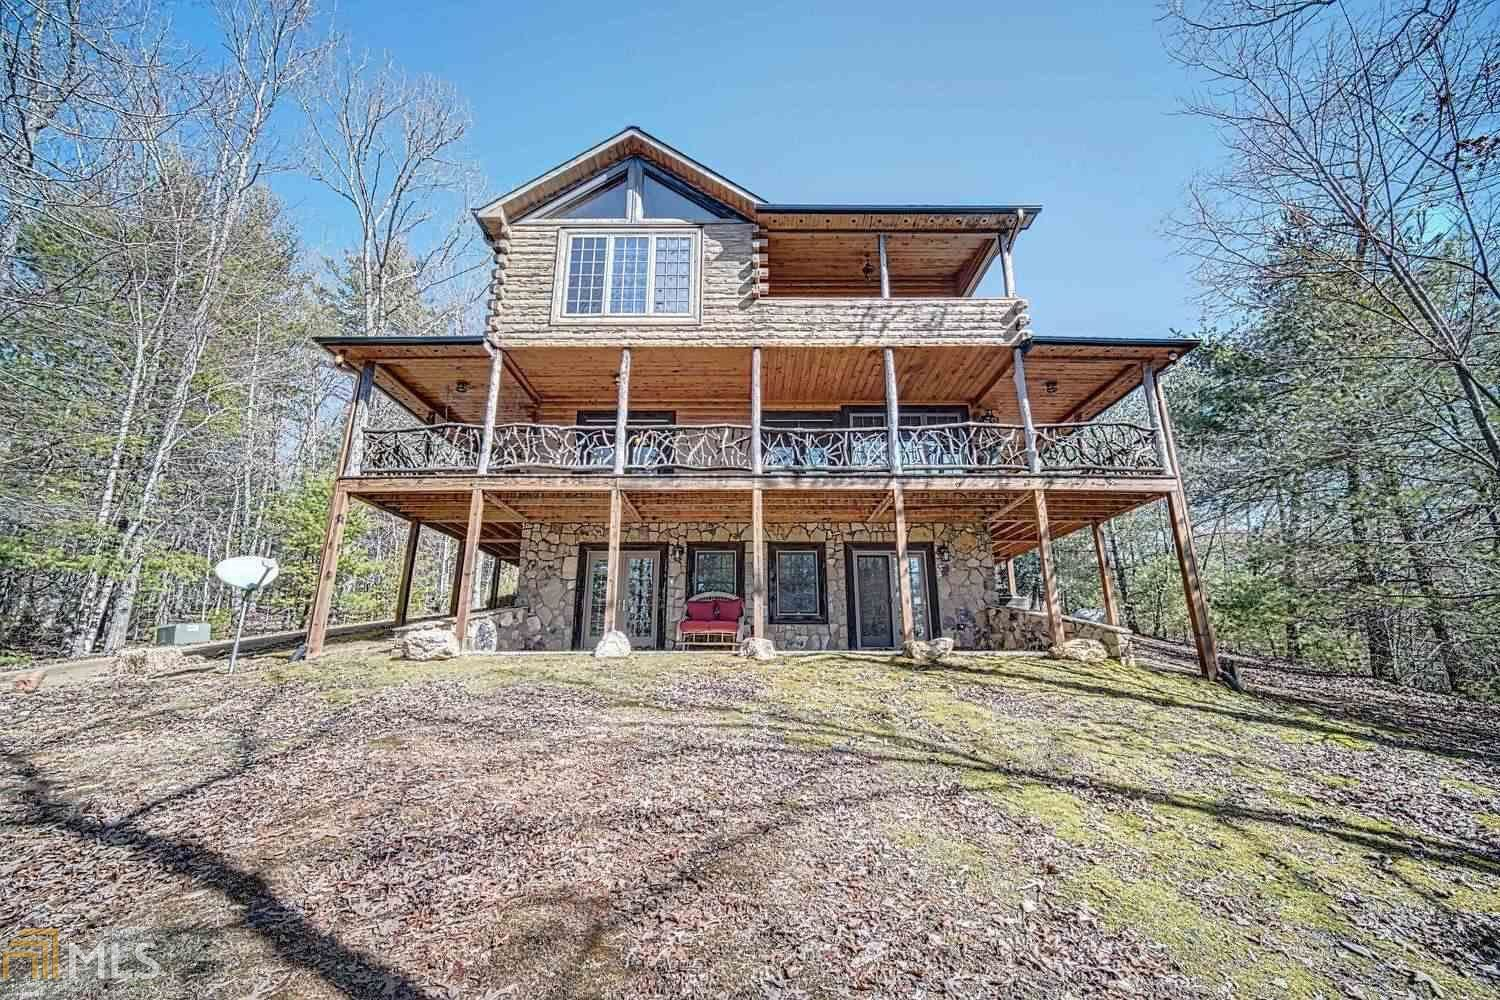 150 Mountain Lake Cir, Blue Ridge, GA 30513 - #: 8760588